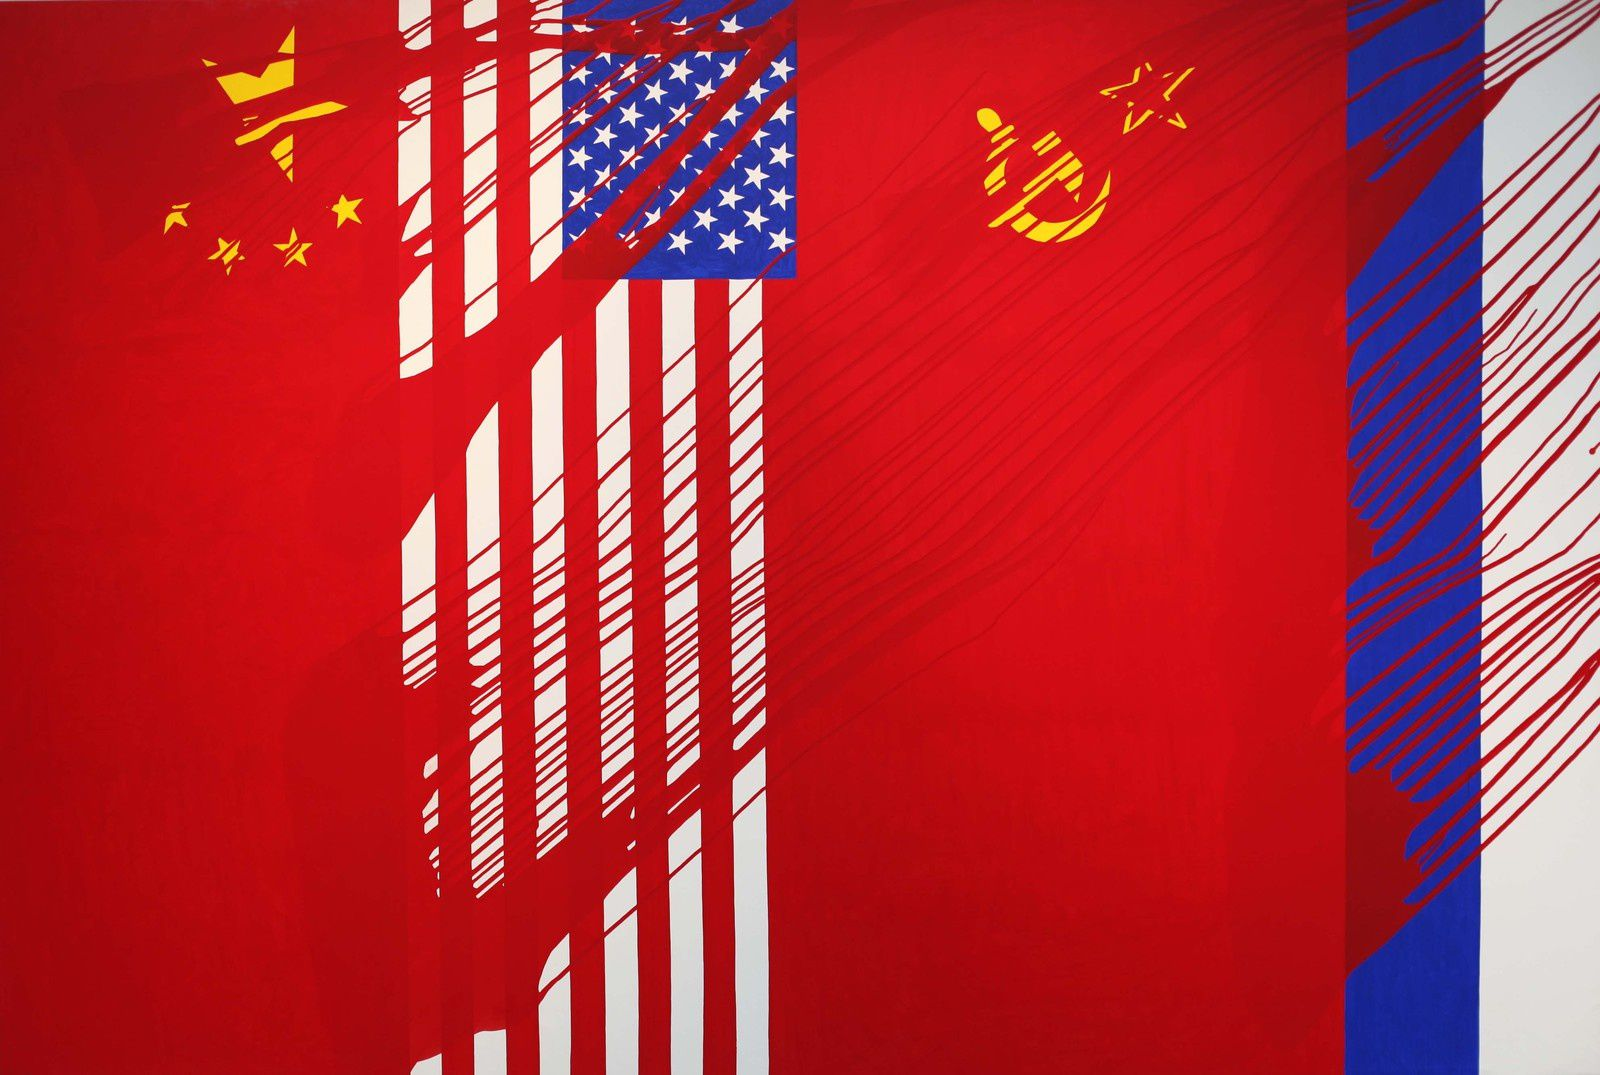 """Chine USA URSS, Russie, 1968-2014""  de Gérard FROMANGER - Courtesy Gérard FROMANGER © Photo Éric Simon"